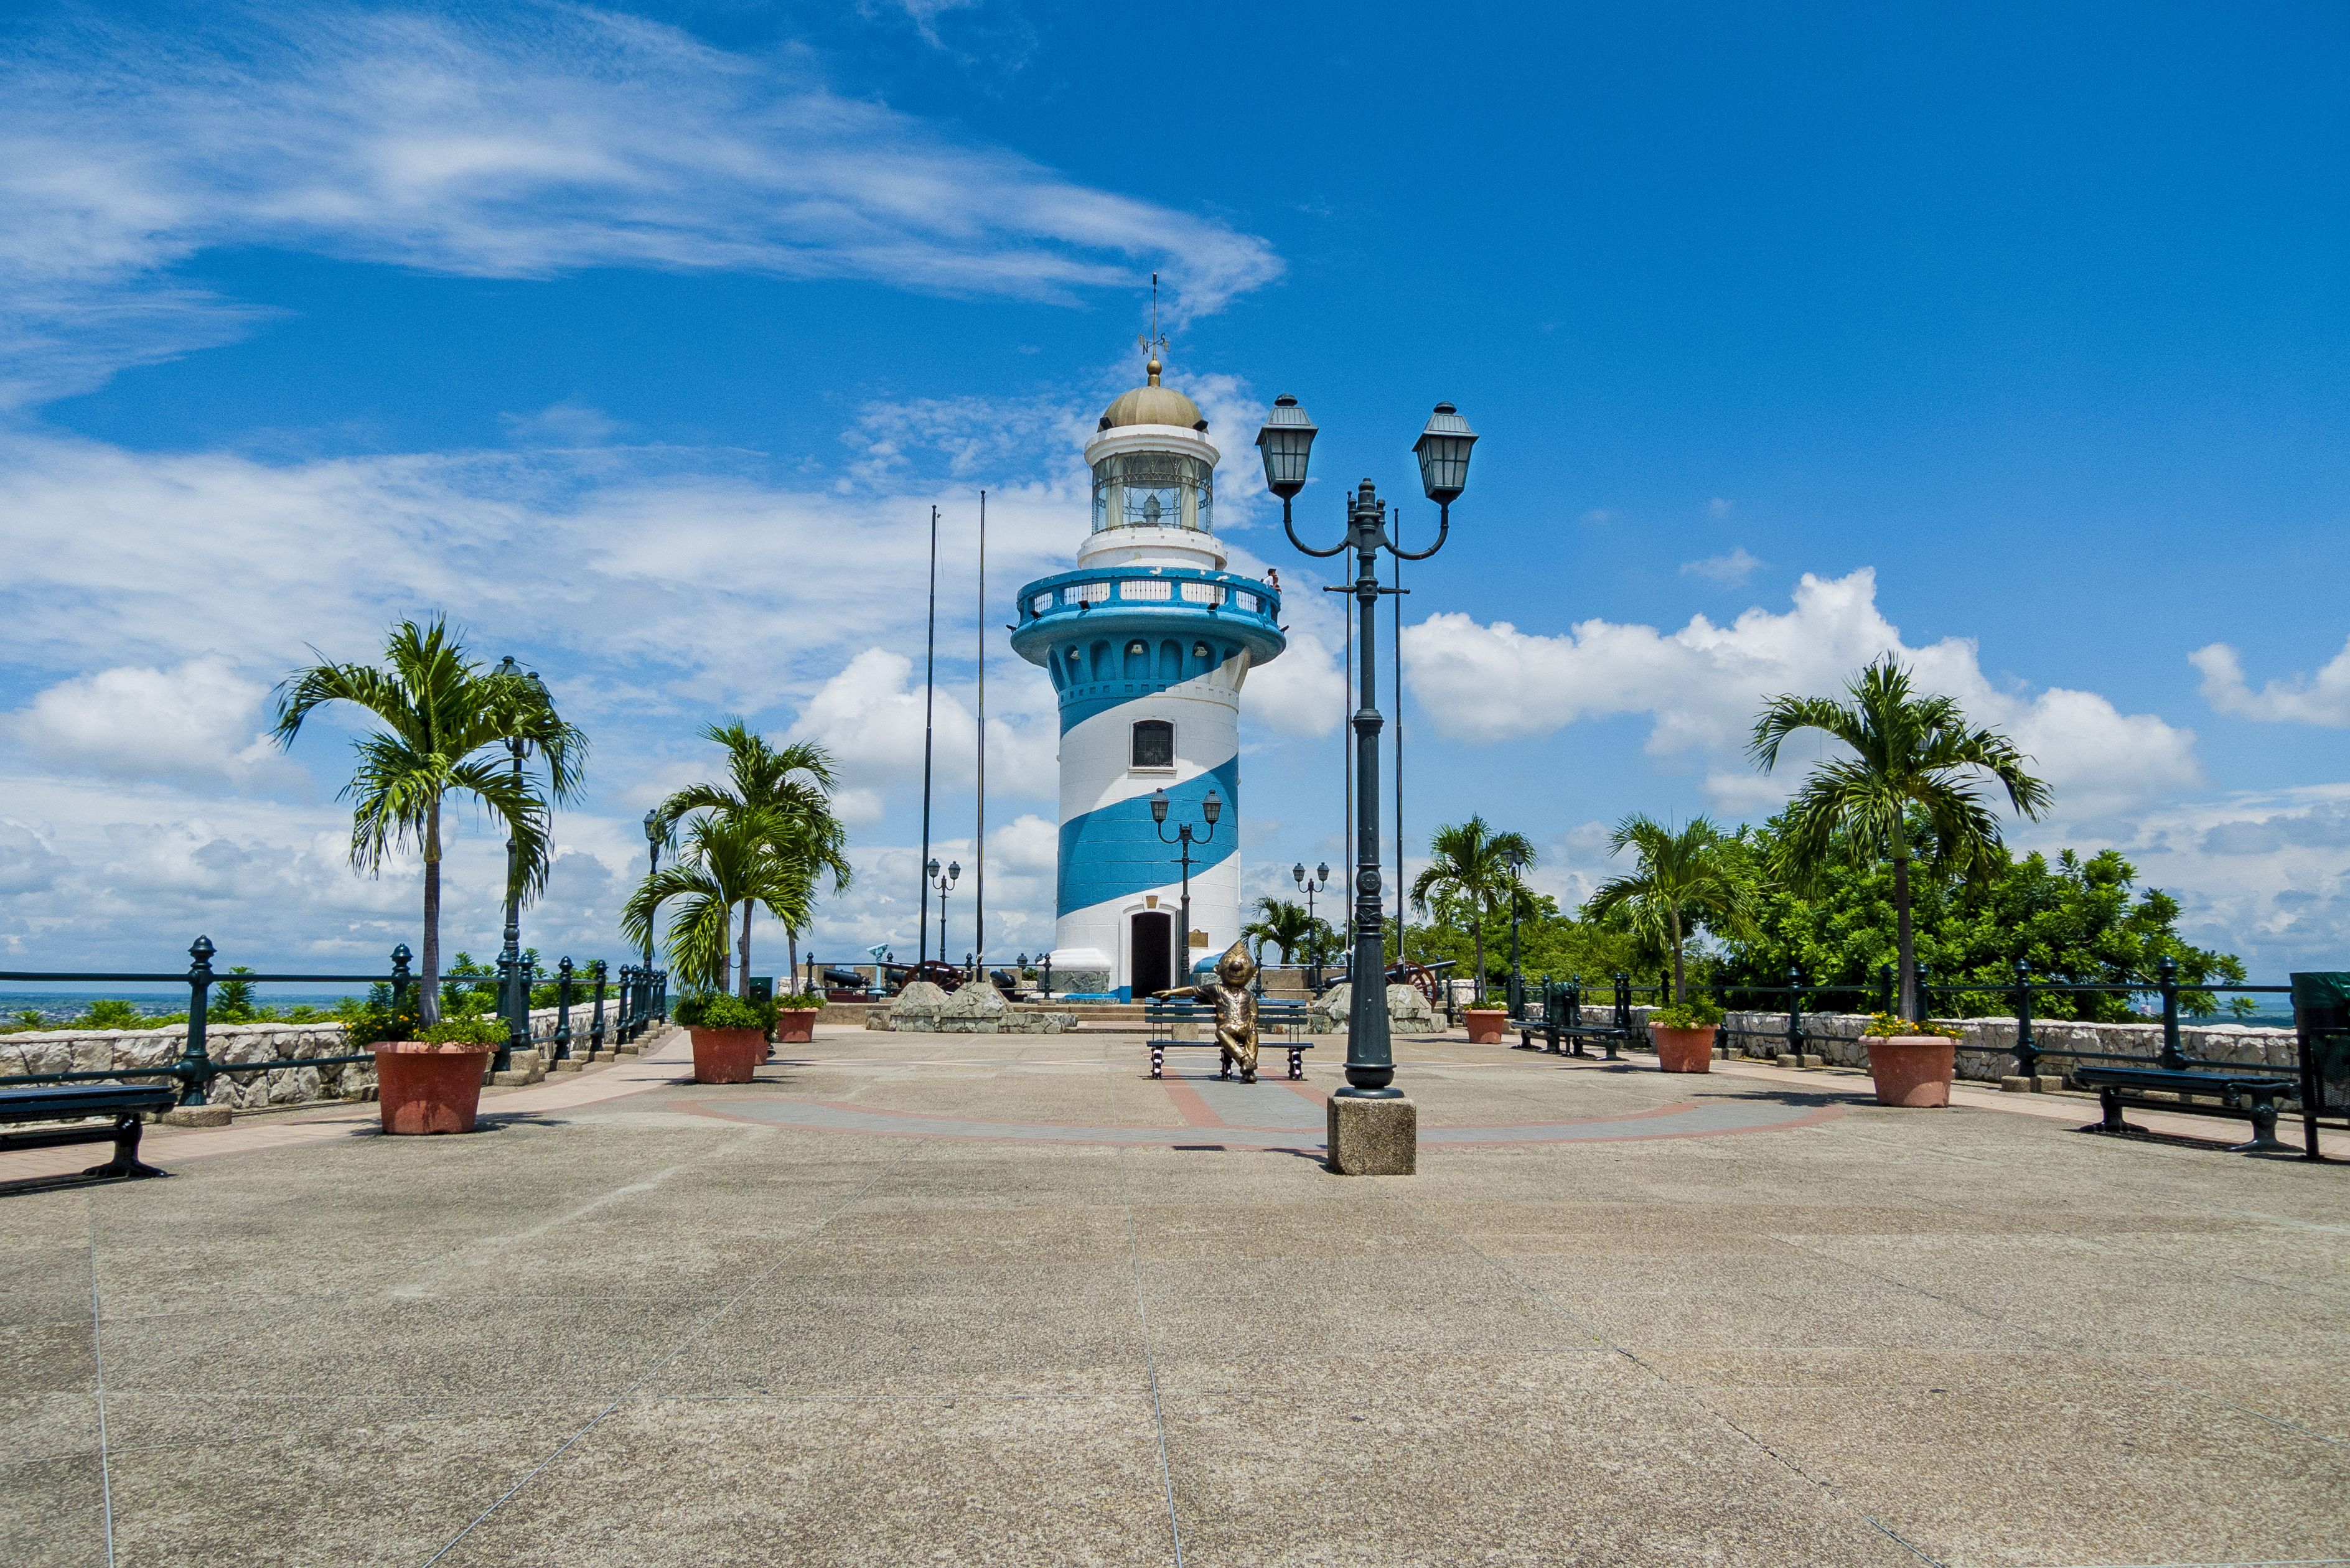 Lighthouse on a beach in Guayaquil